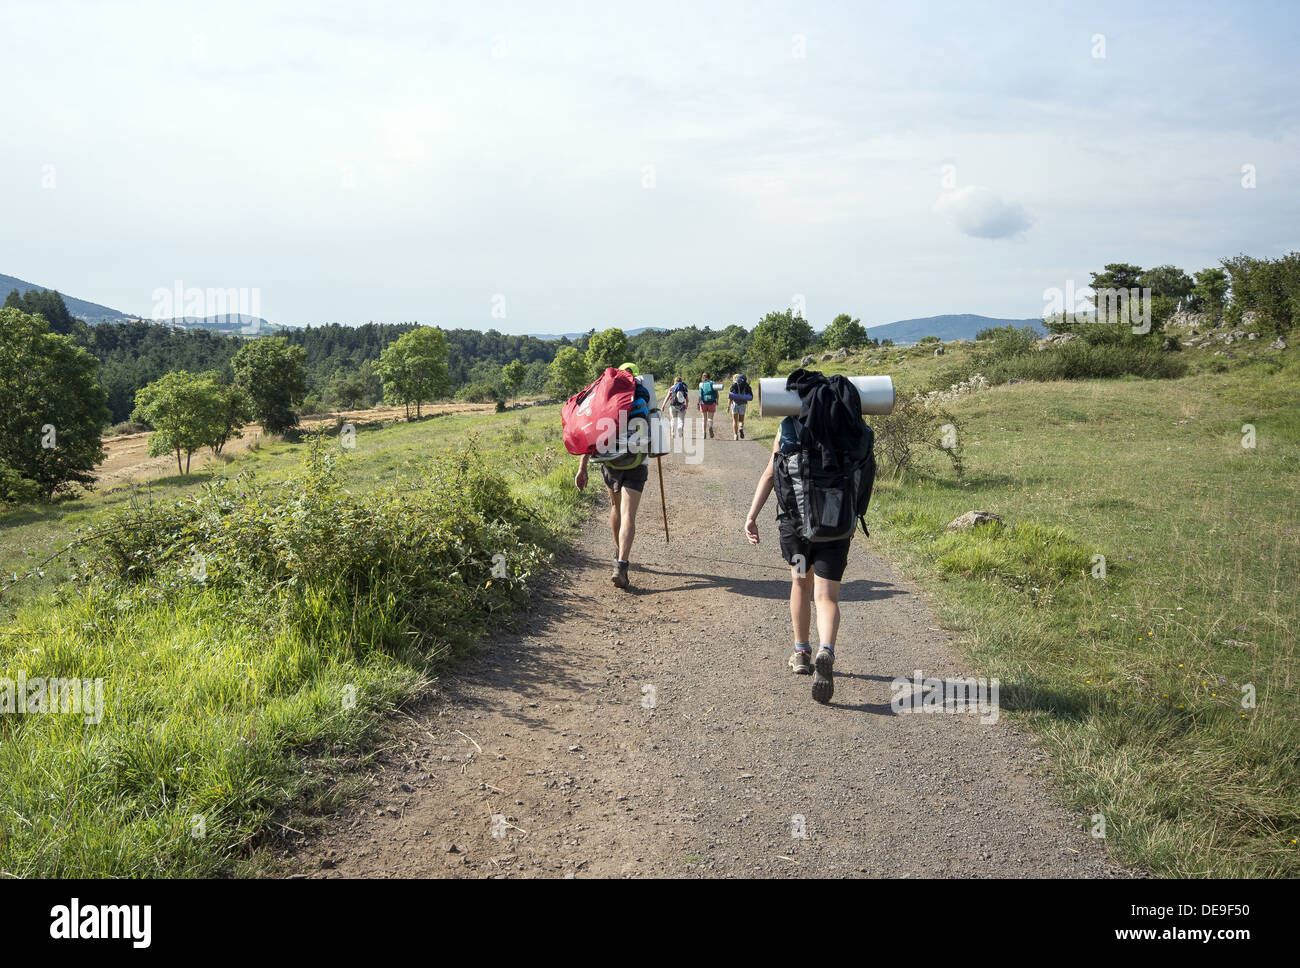 Pilgrims on the GR65 walking route the Way of St James in the Auvergne region of France Stock Photo